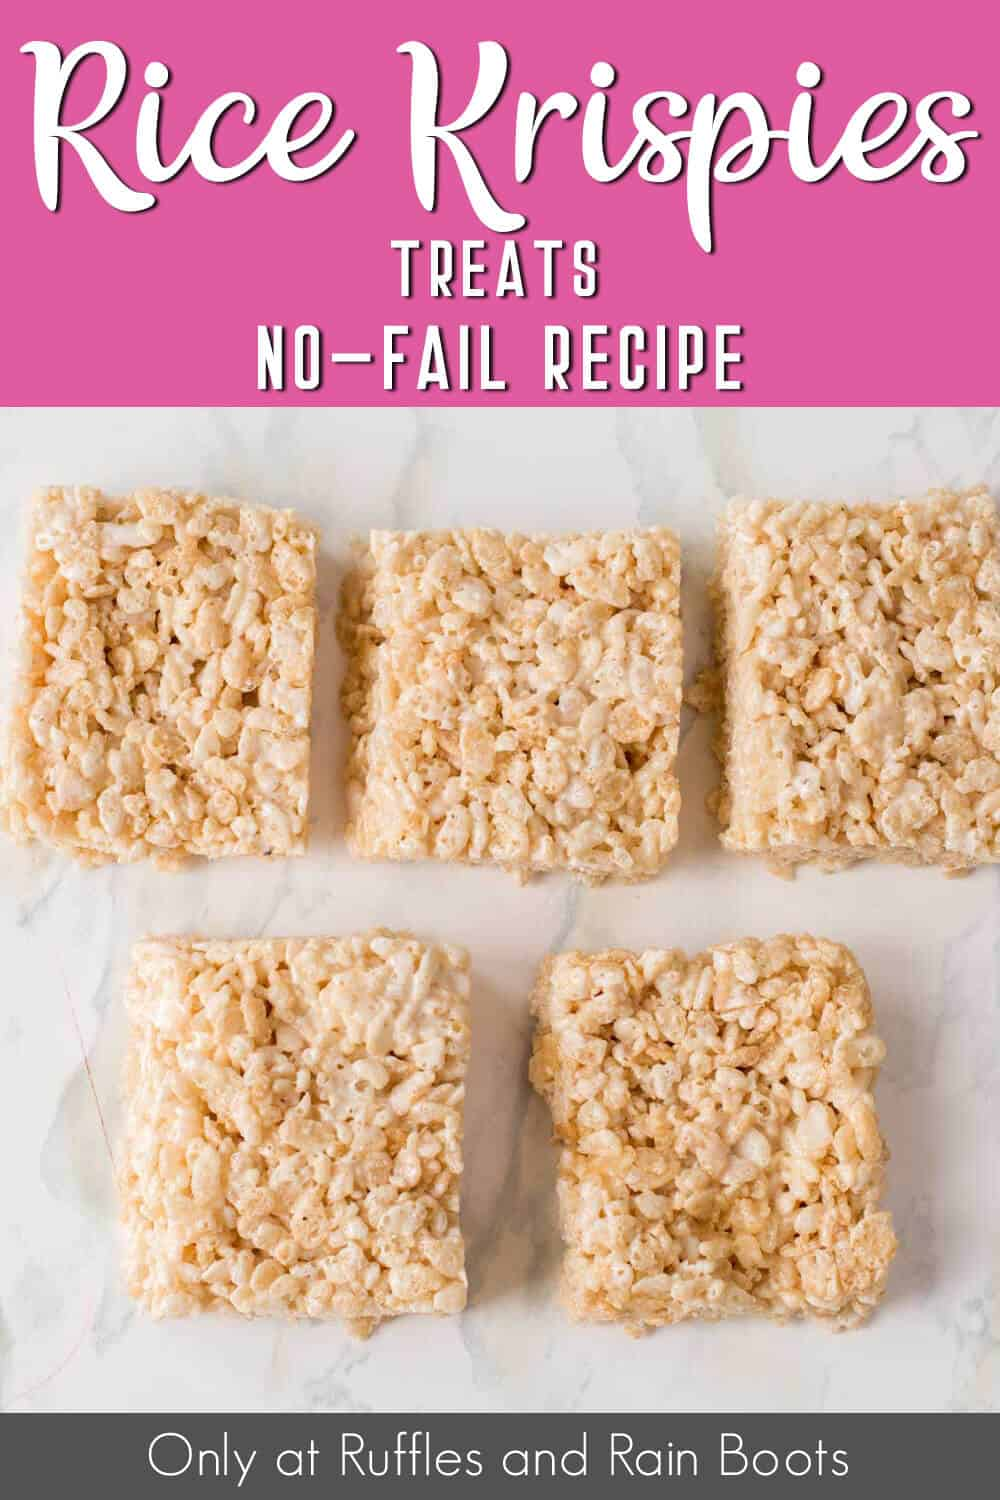 squares of rice crispies treats with text which reads rice krispies treats no-fail recipe